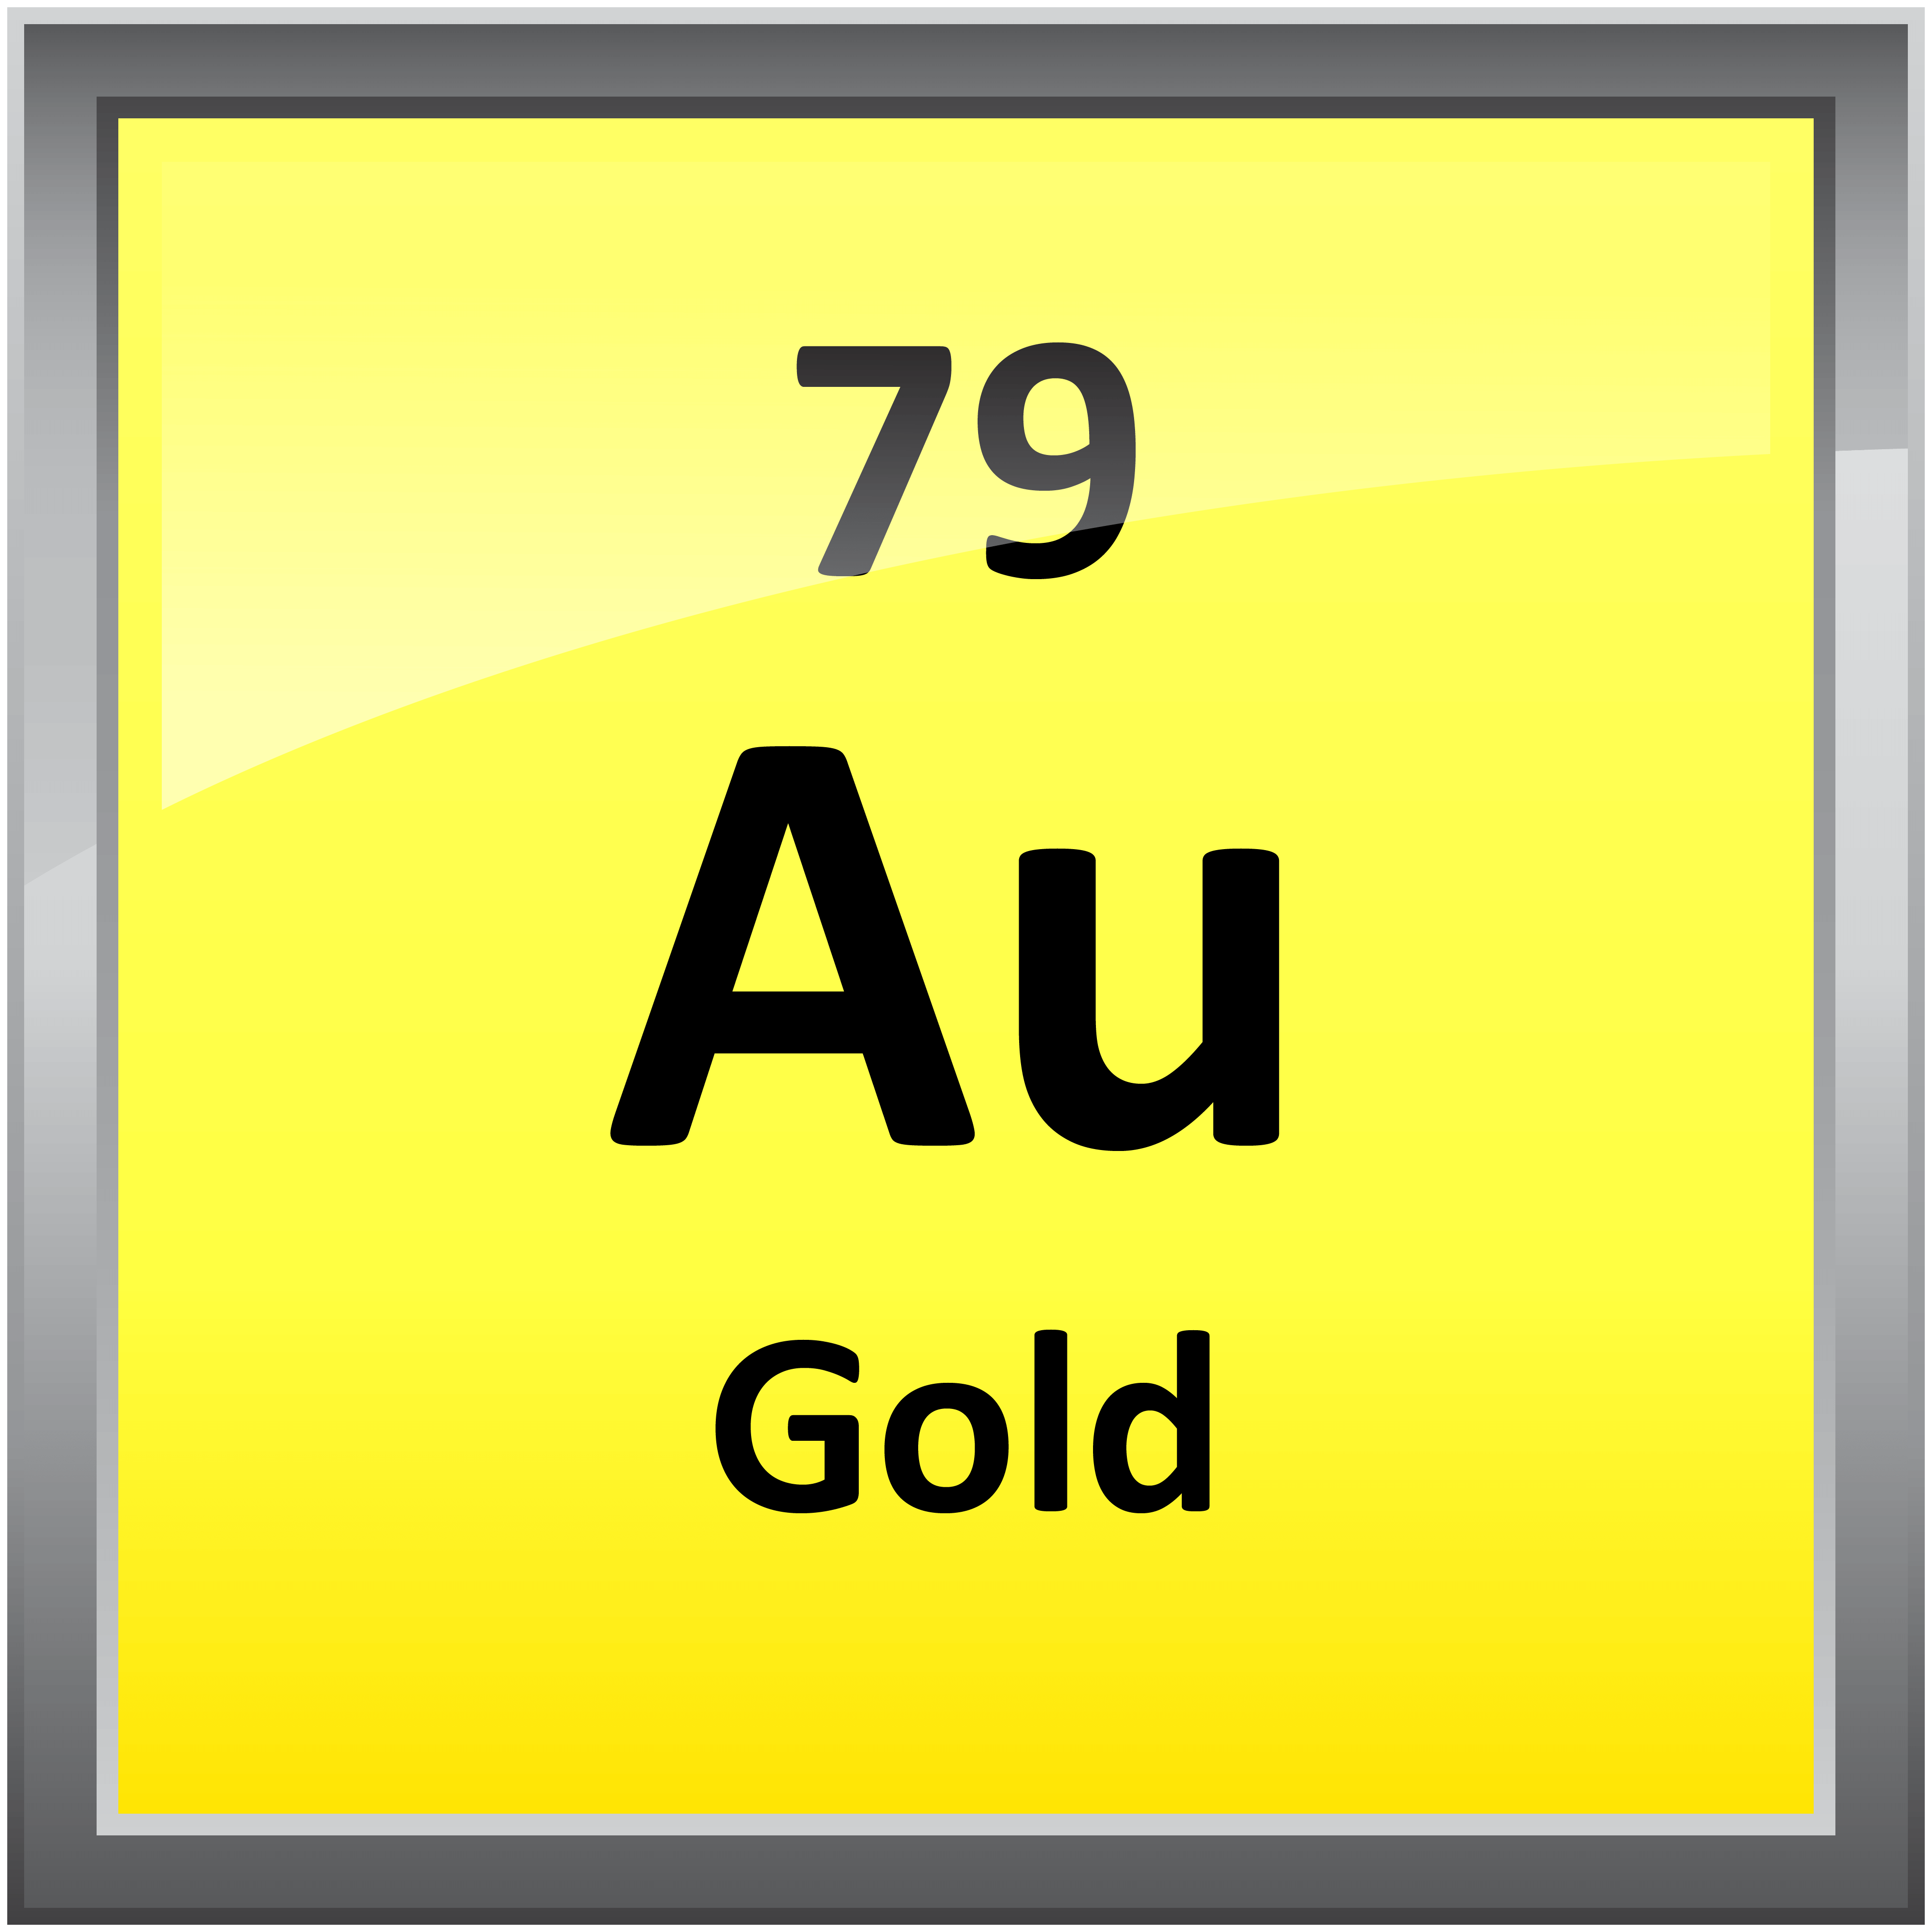 metals electropositive chemical elements Cesium is the most electropositive stable element francium is more electropositive than ceasium but, not stable as it is highly radioactive (maximum half-life of only 22 minutes) francium is the second rarest element in the earth's crust, next to astatine.